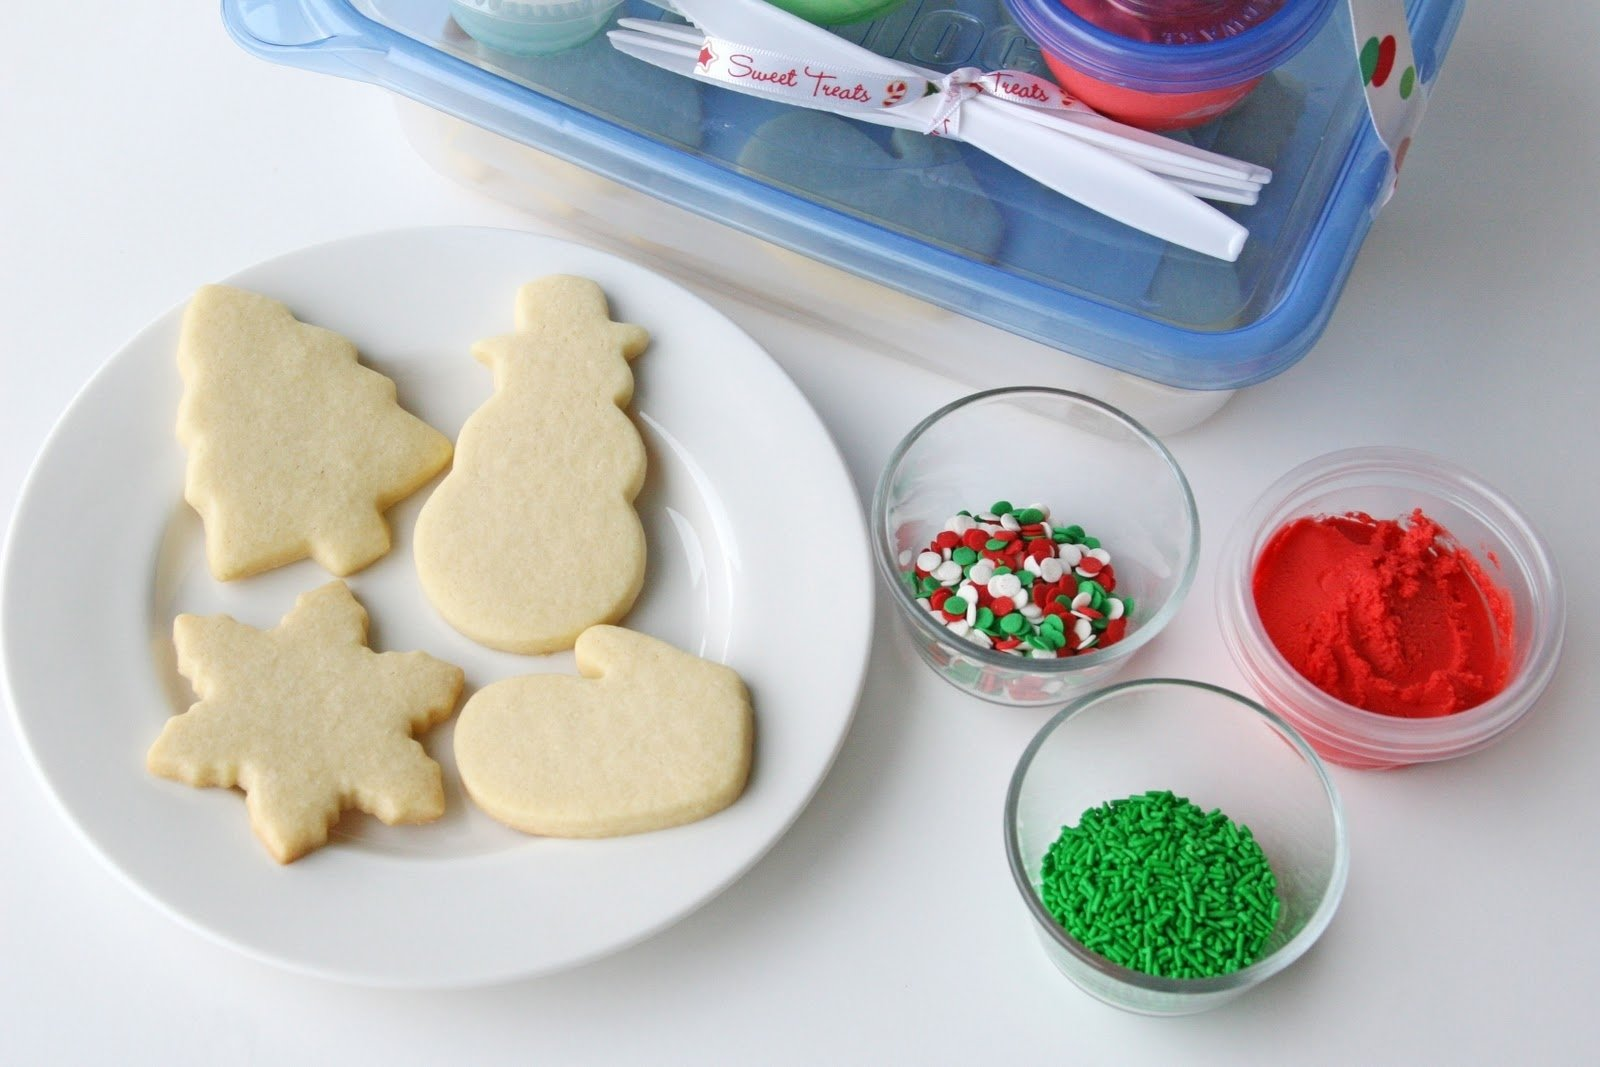 10 Perfect Christmas Cookie Ideas For Kids cookie decorating kits for kids and easy butter frosting recipe 2021